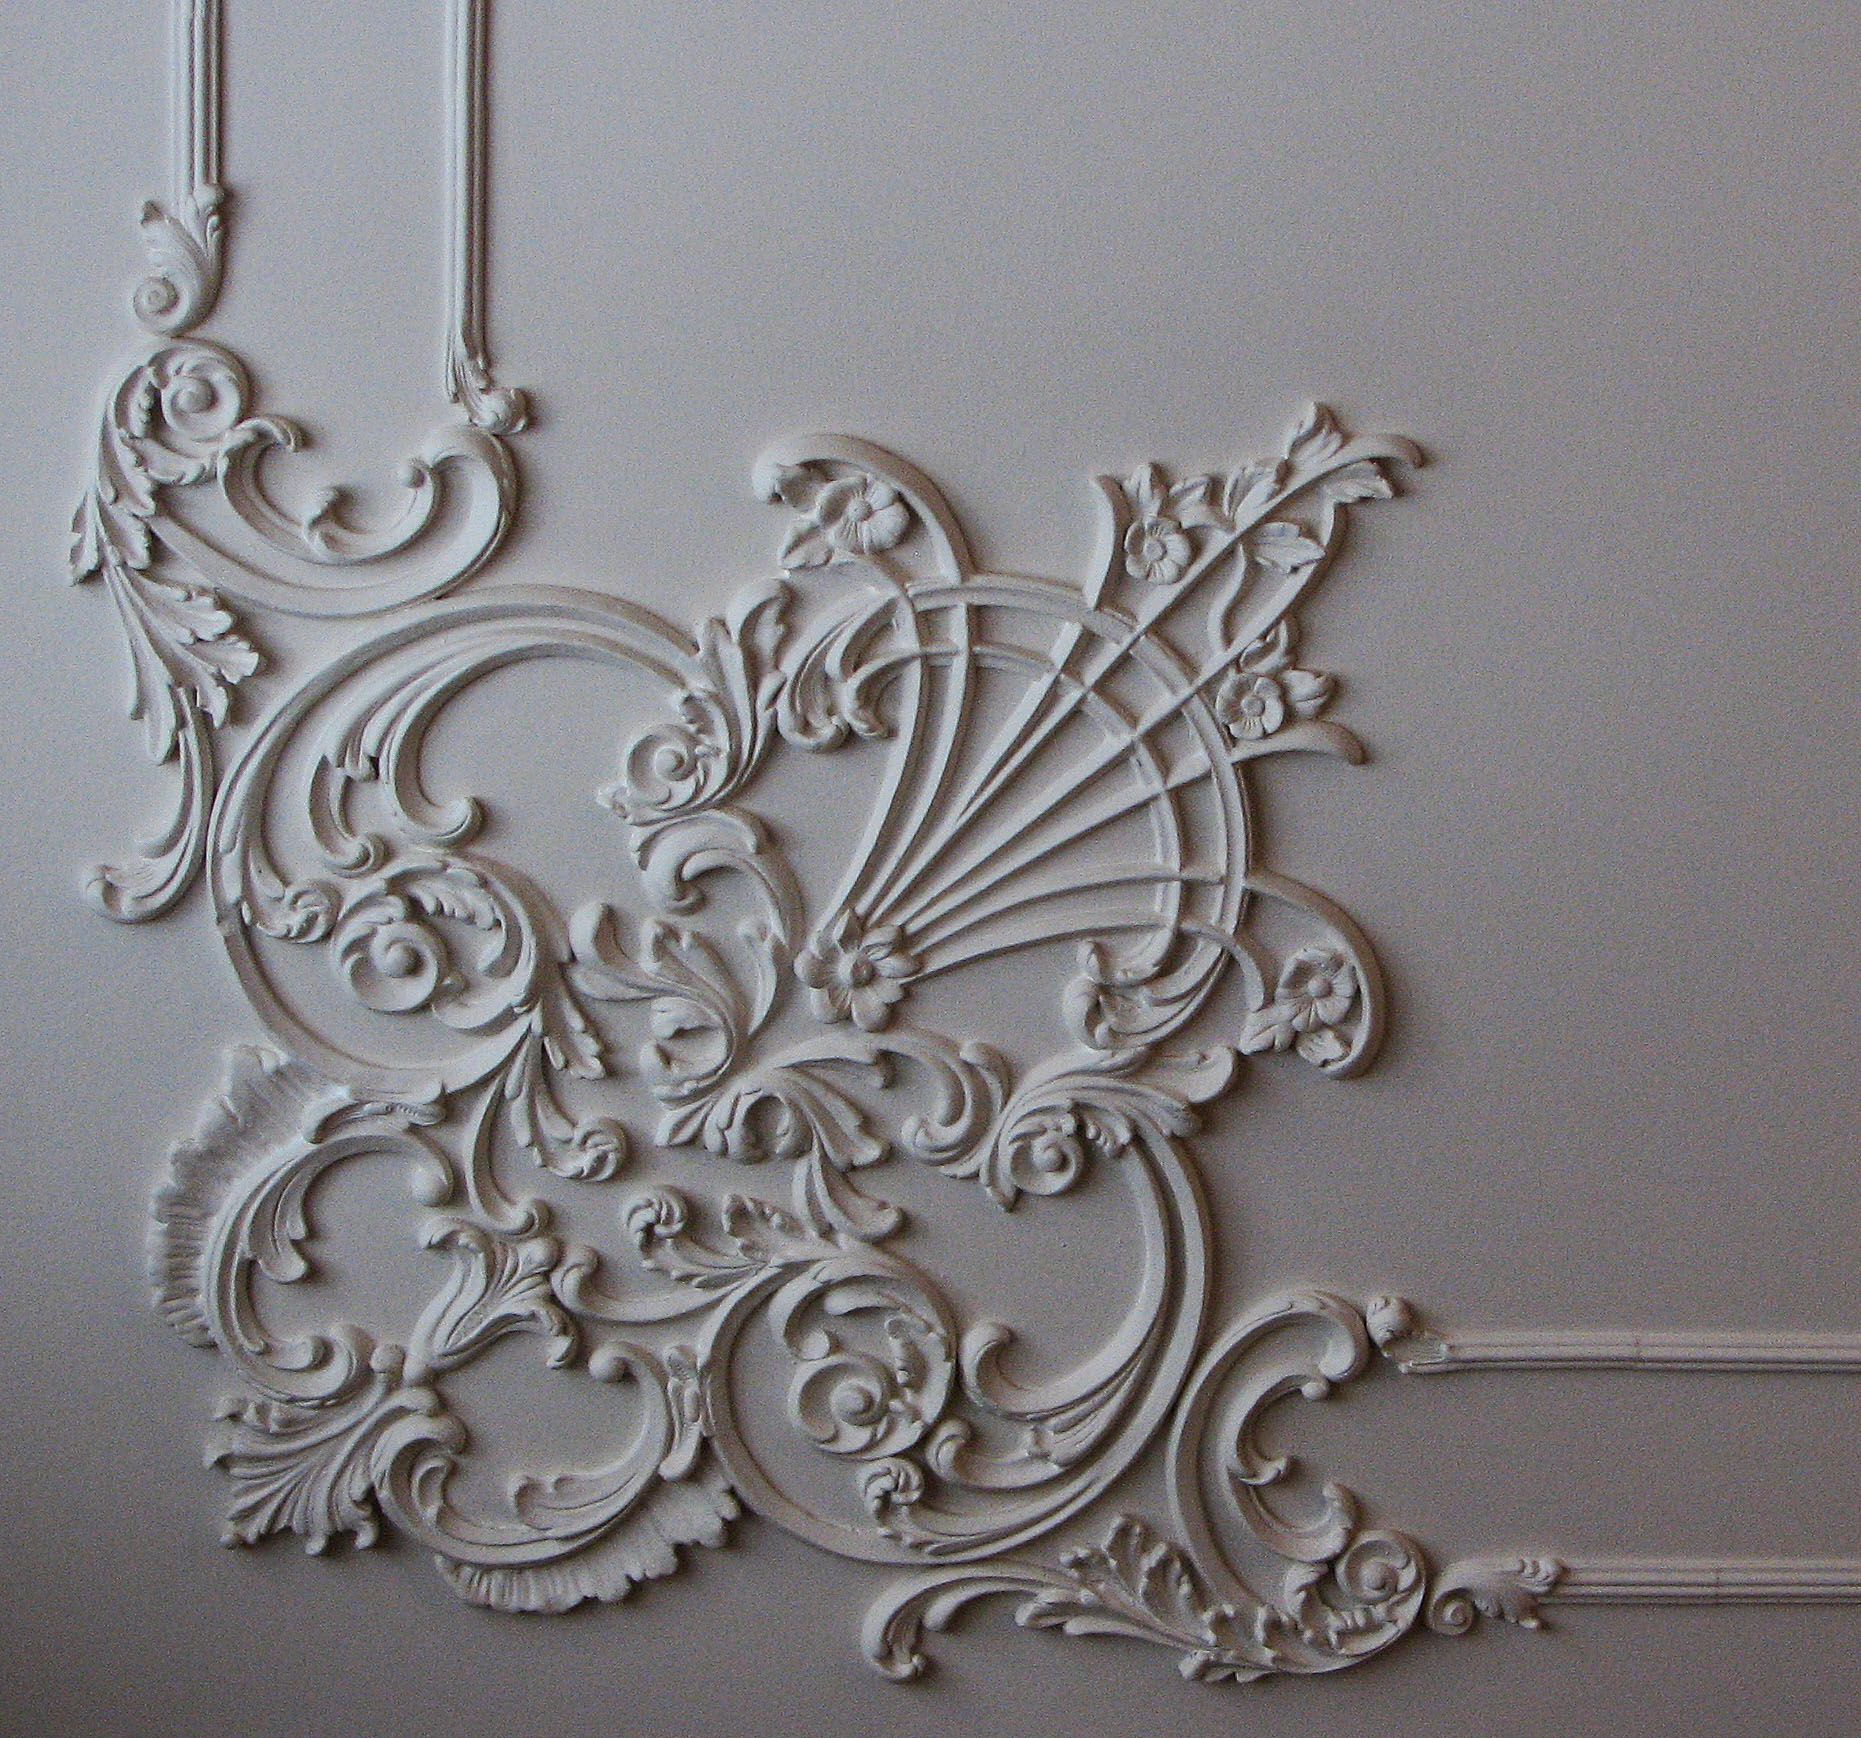 10 Steps Trimming Kitchen Peninsulas With Beadboard: Home Decor, Plaster Mouldings